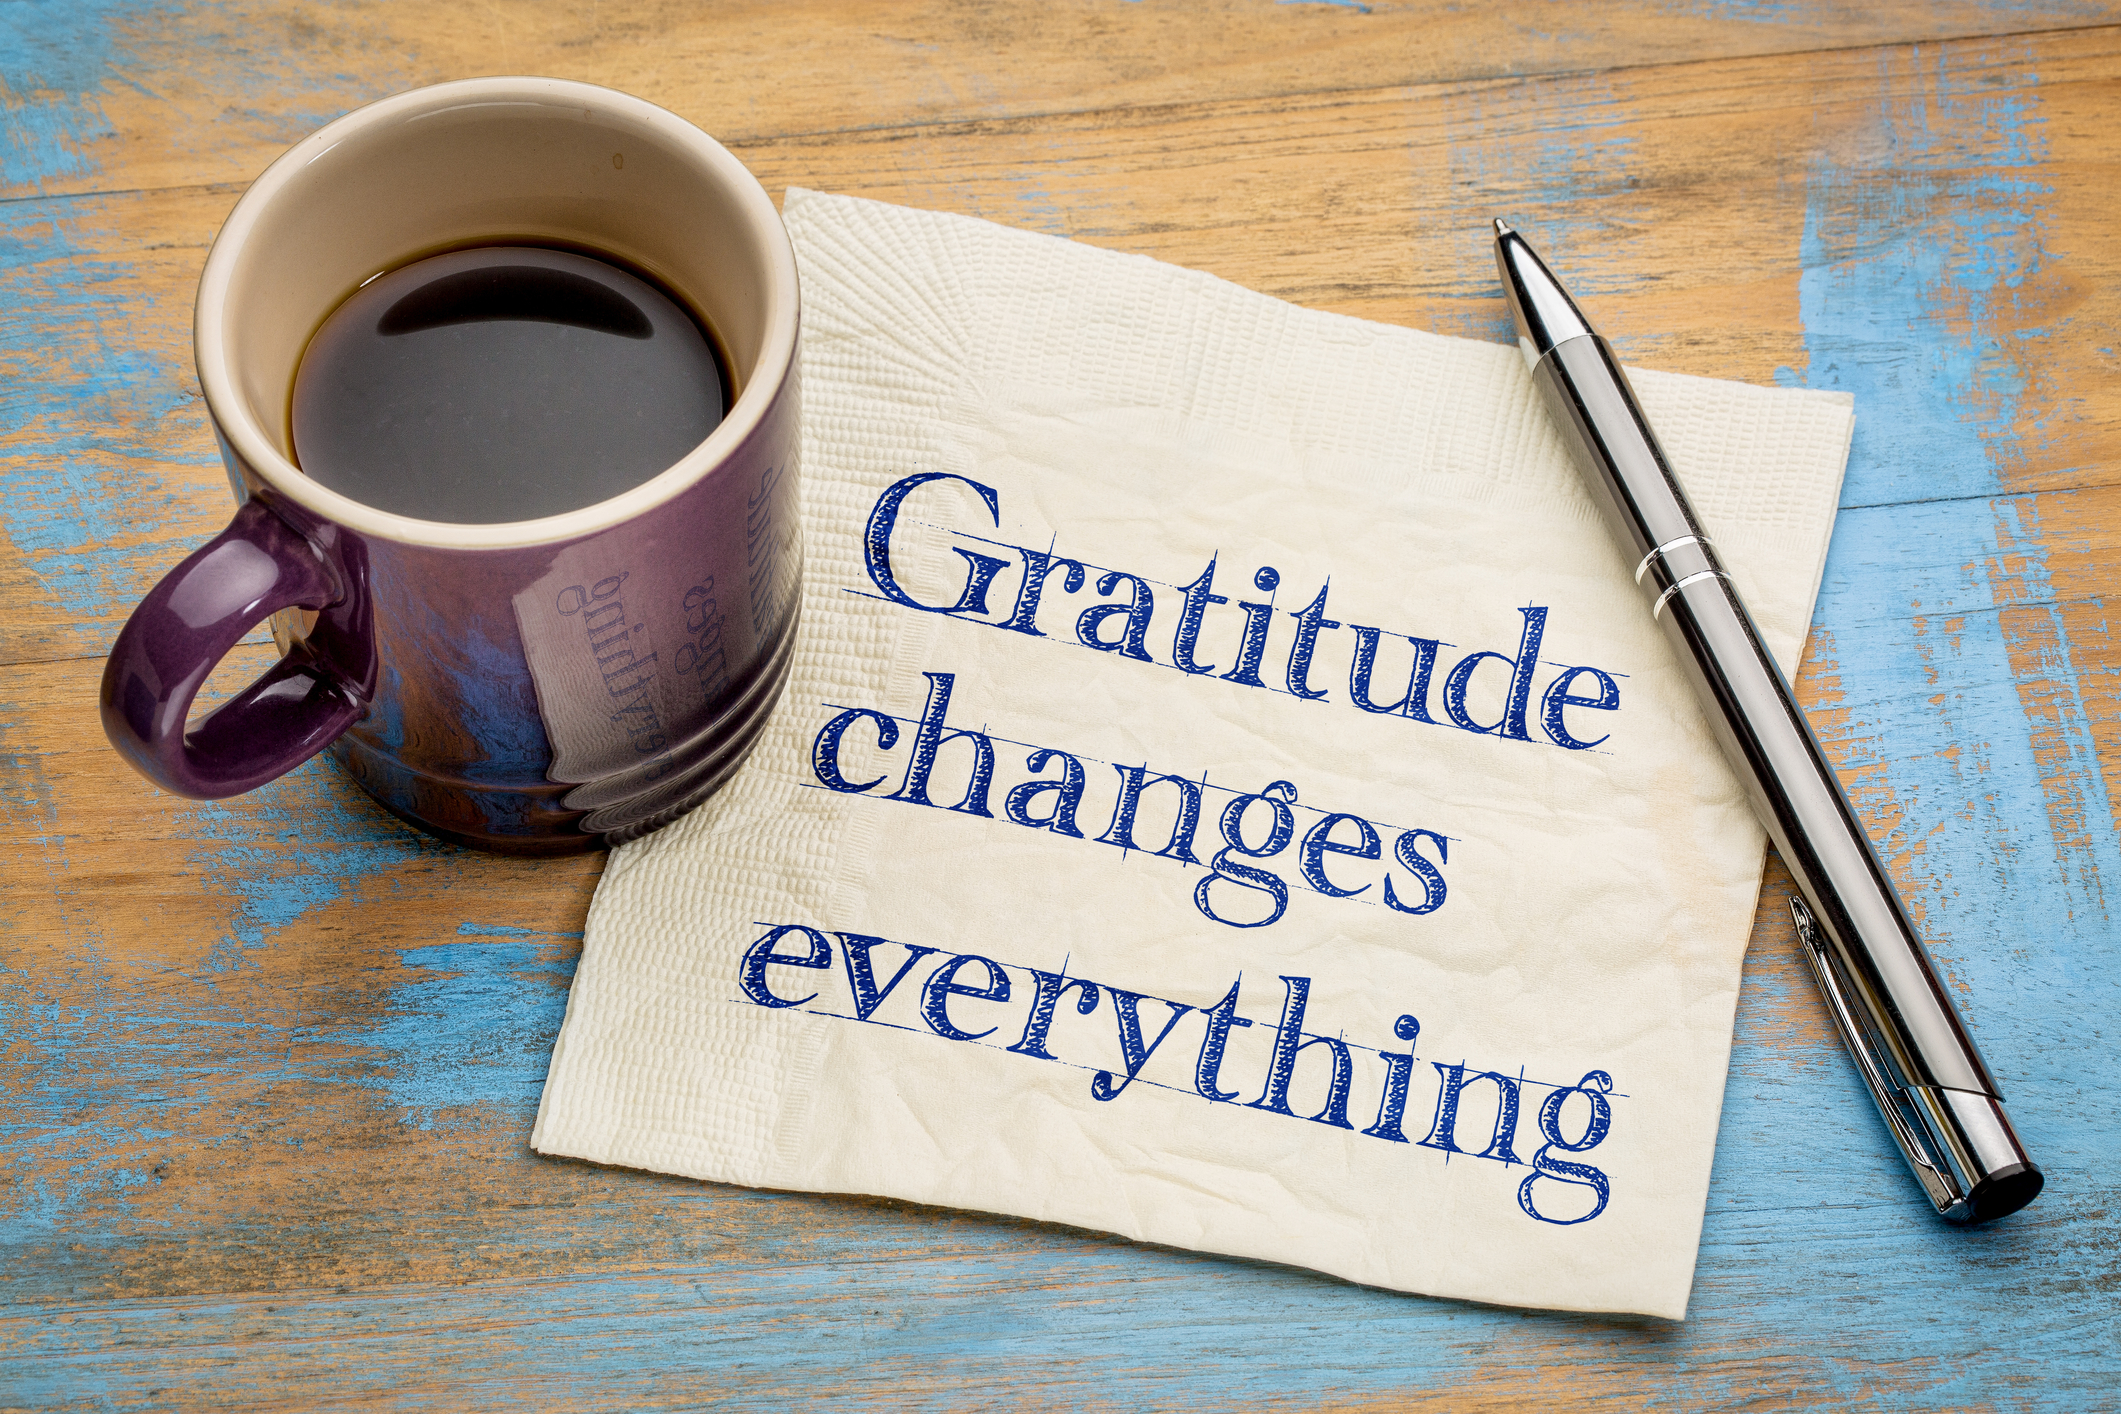 How Do I Make Gratitude My Constant Companion?